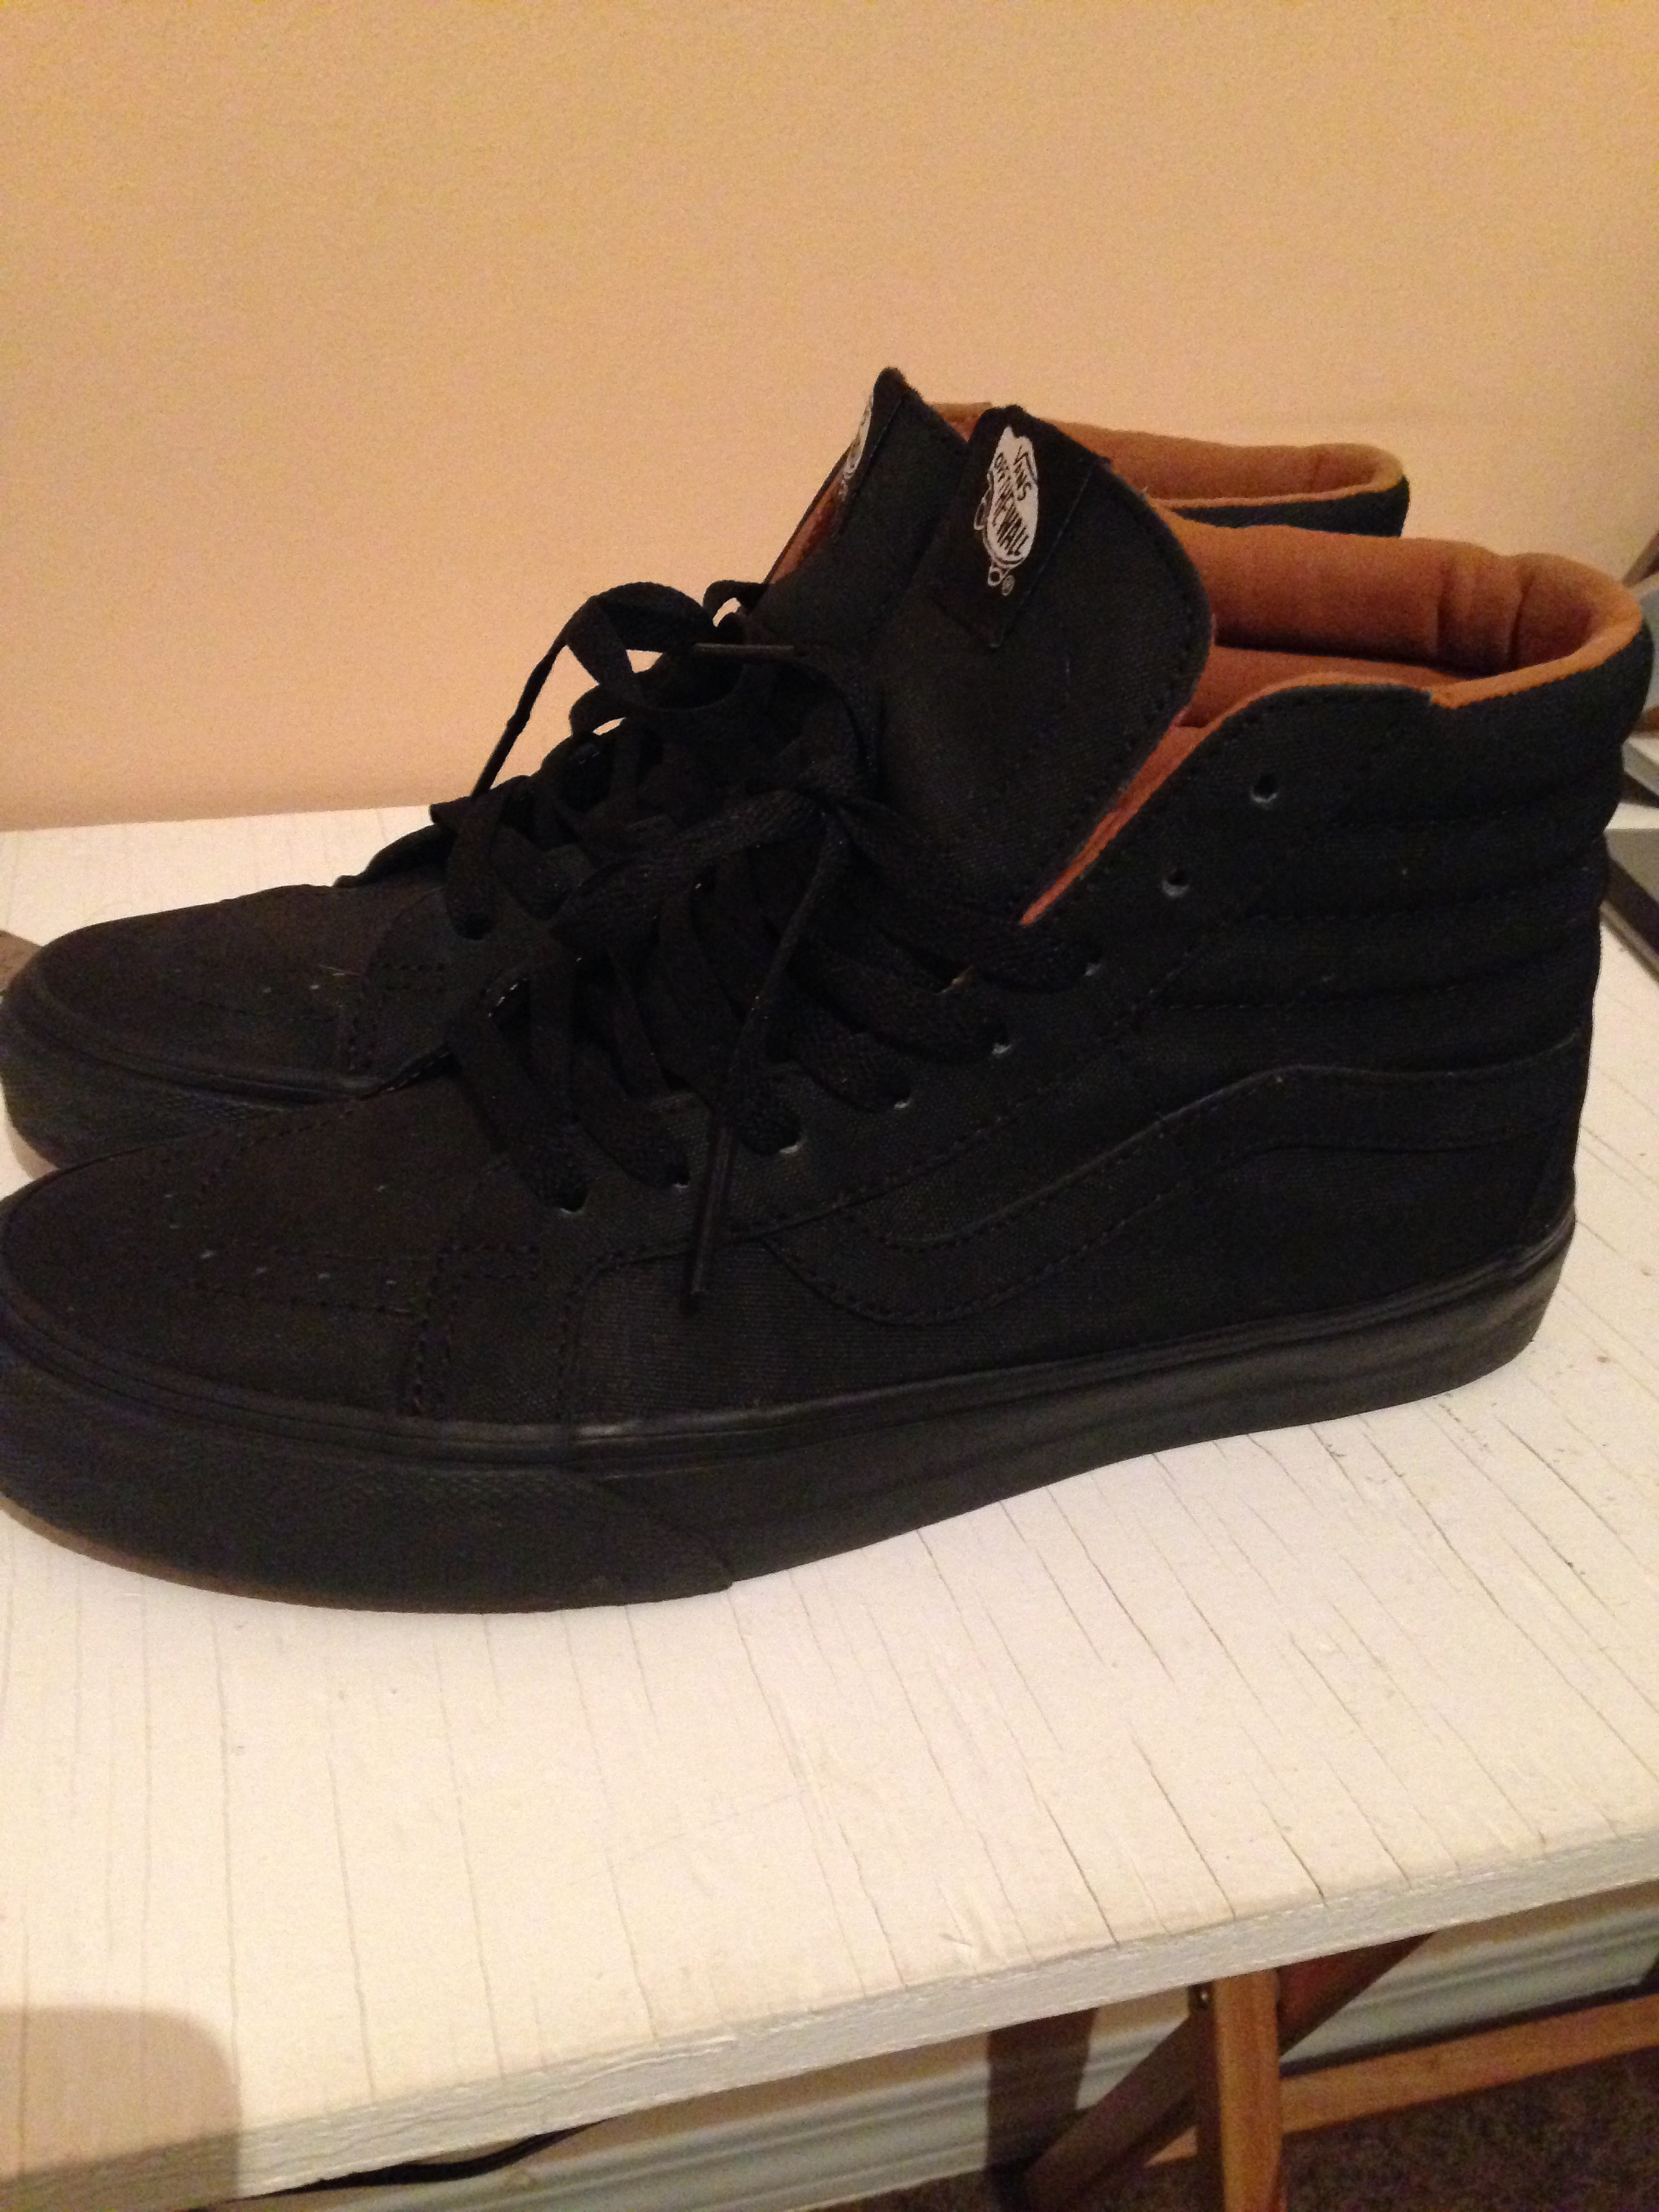 d1743c620aa4fd Vans Sk8 hi X-Tuff Black Size 8 - Hi-Top Sneakers for Sale - Grailed